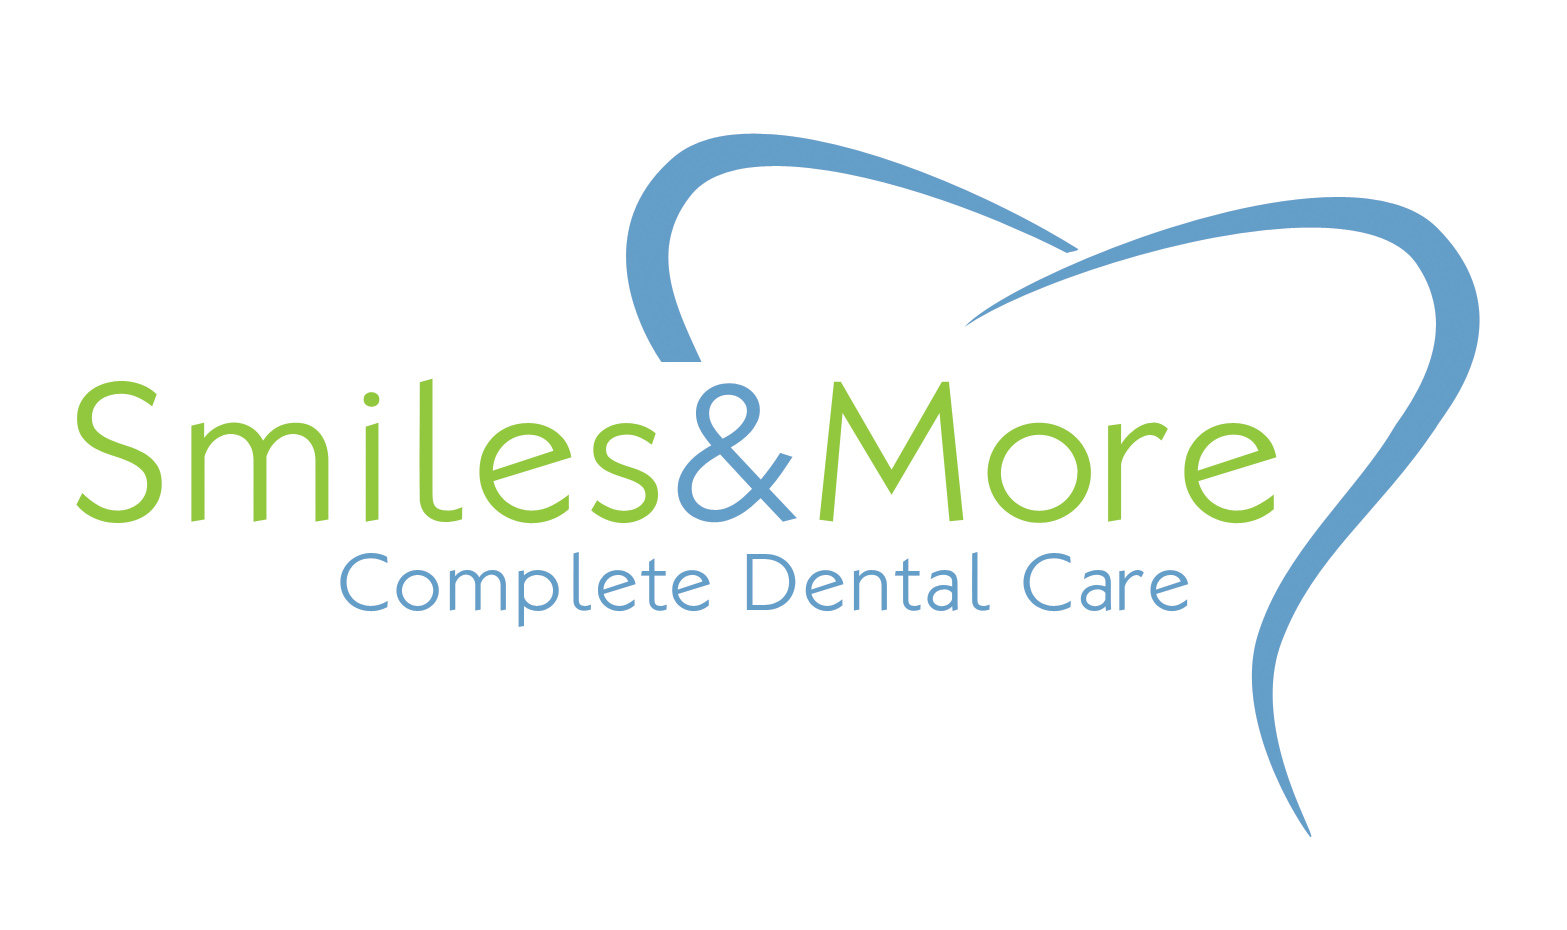 Smiles & More logo